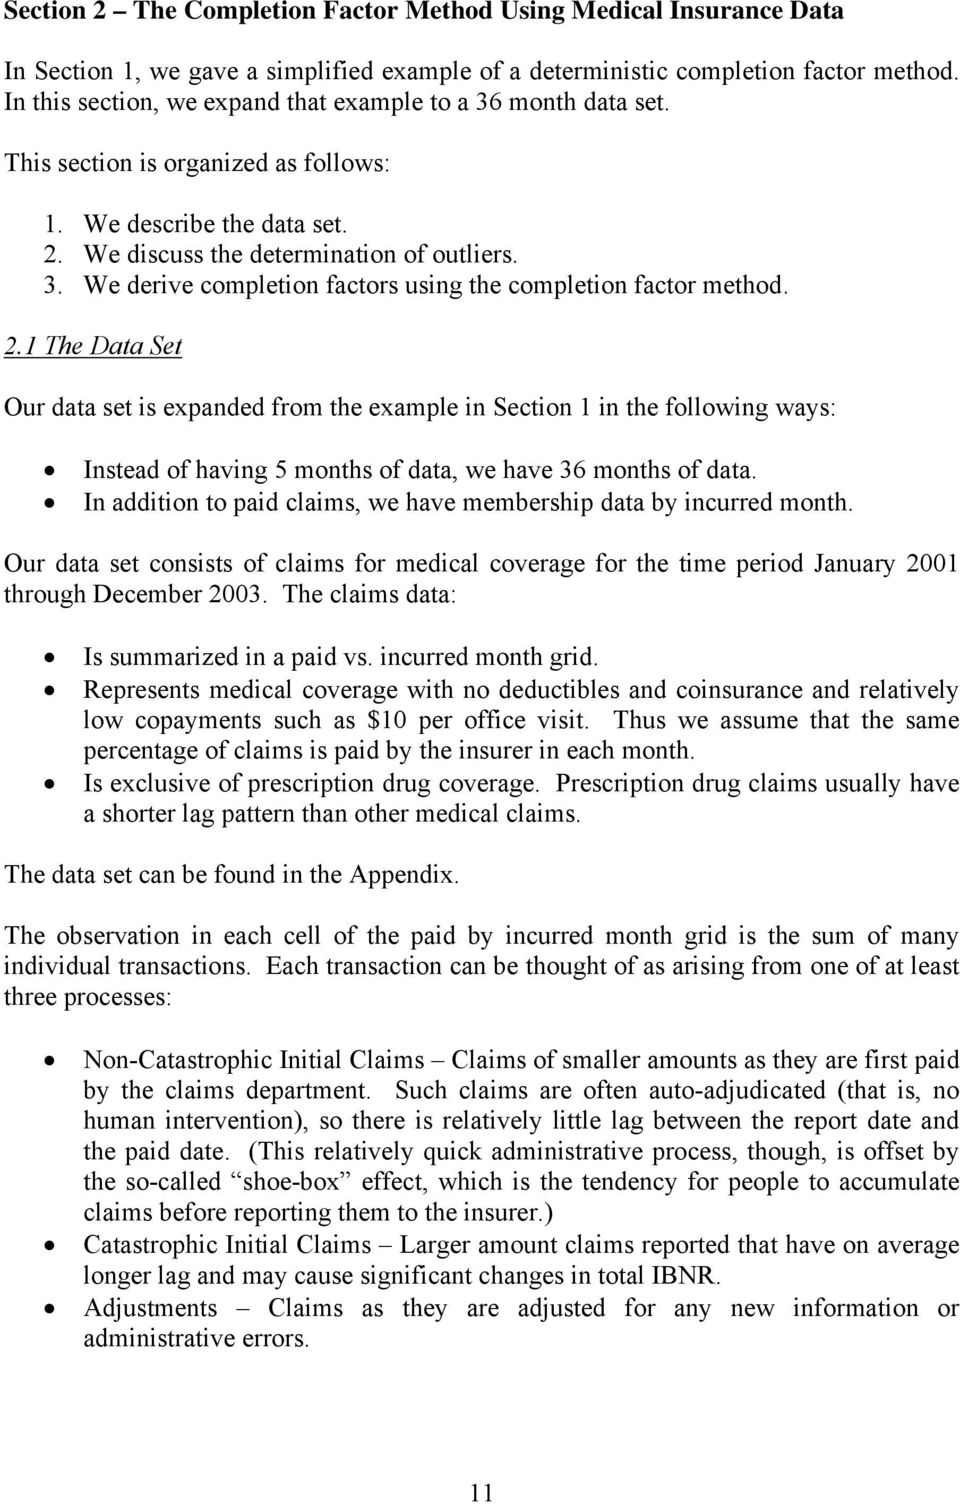 2.1 The Data Set Our data set is expanded from the example in Section 1 in the following ways: Instead of having 5 months of data, we have 36 months of data.